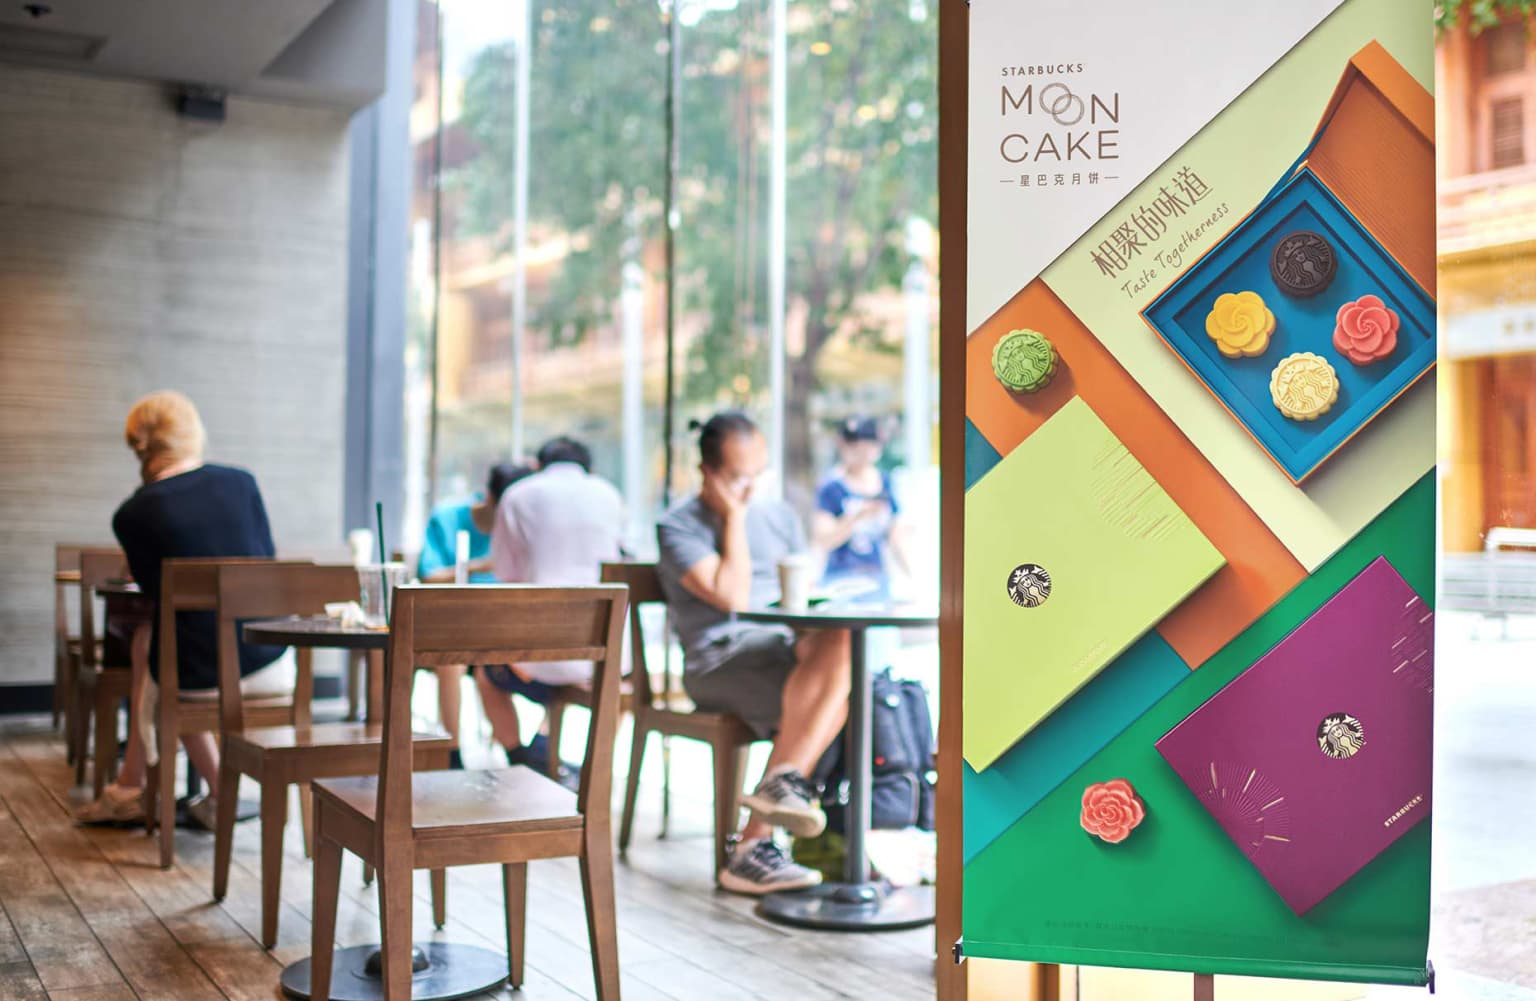 Starbucks / Mooncake promotional campaign